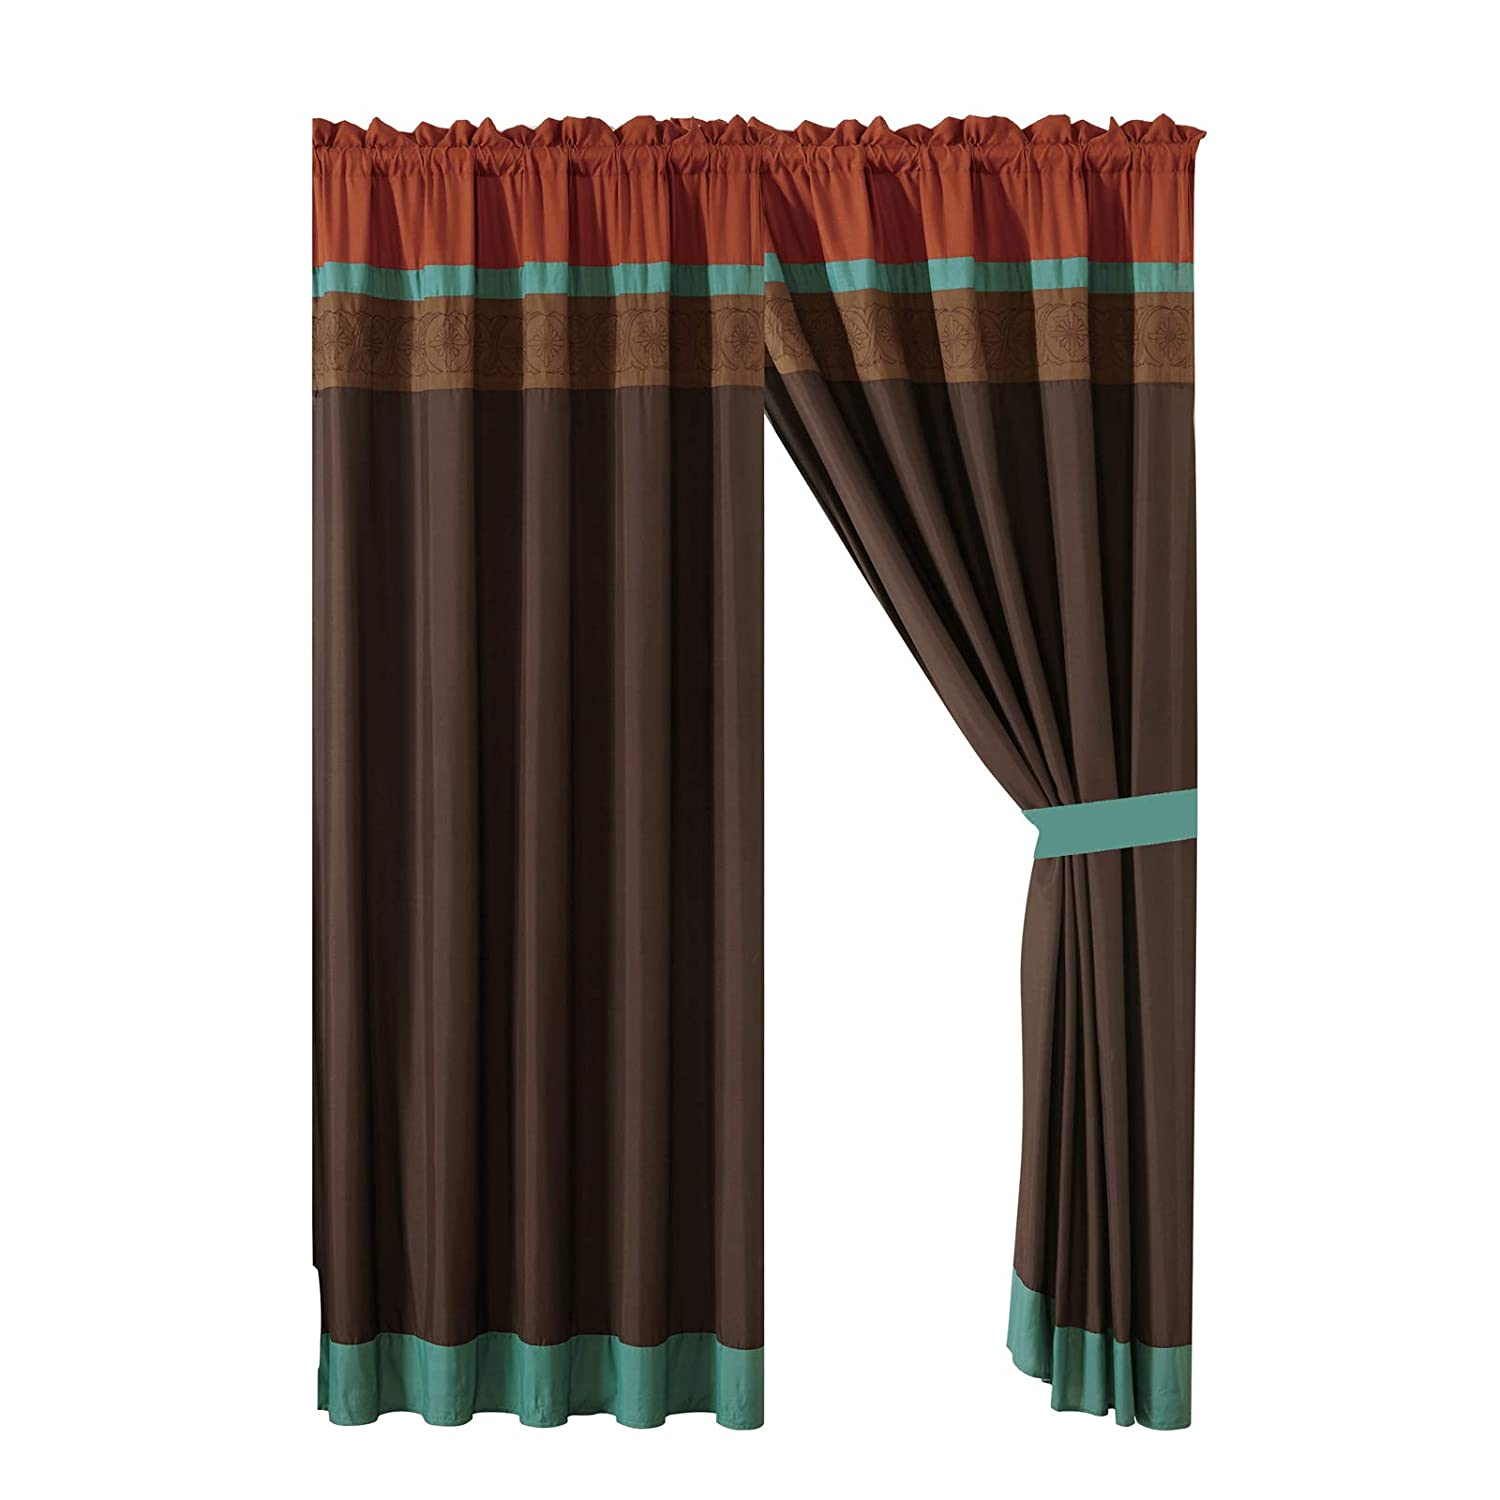 HGS 4-Pc Adrian Geometric Floral Embroidery Curtain Set Teal Rust Brown Mocha Drape Sheer Liner